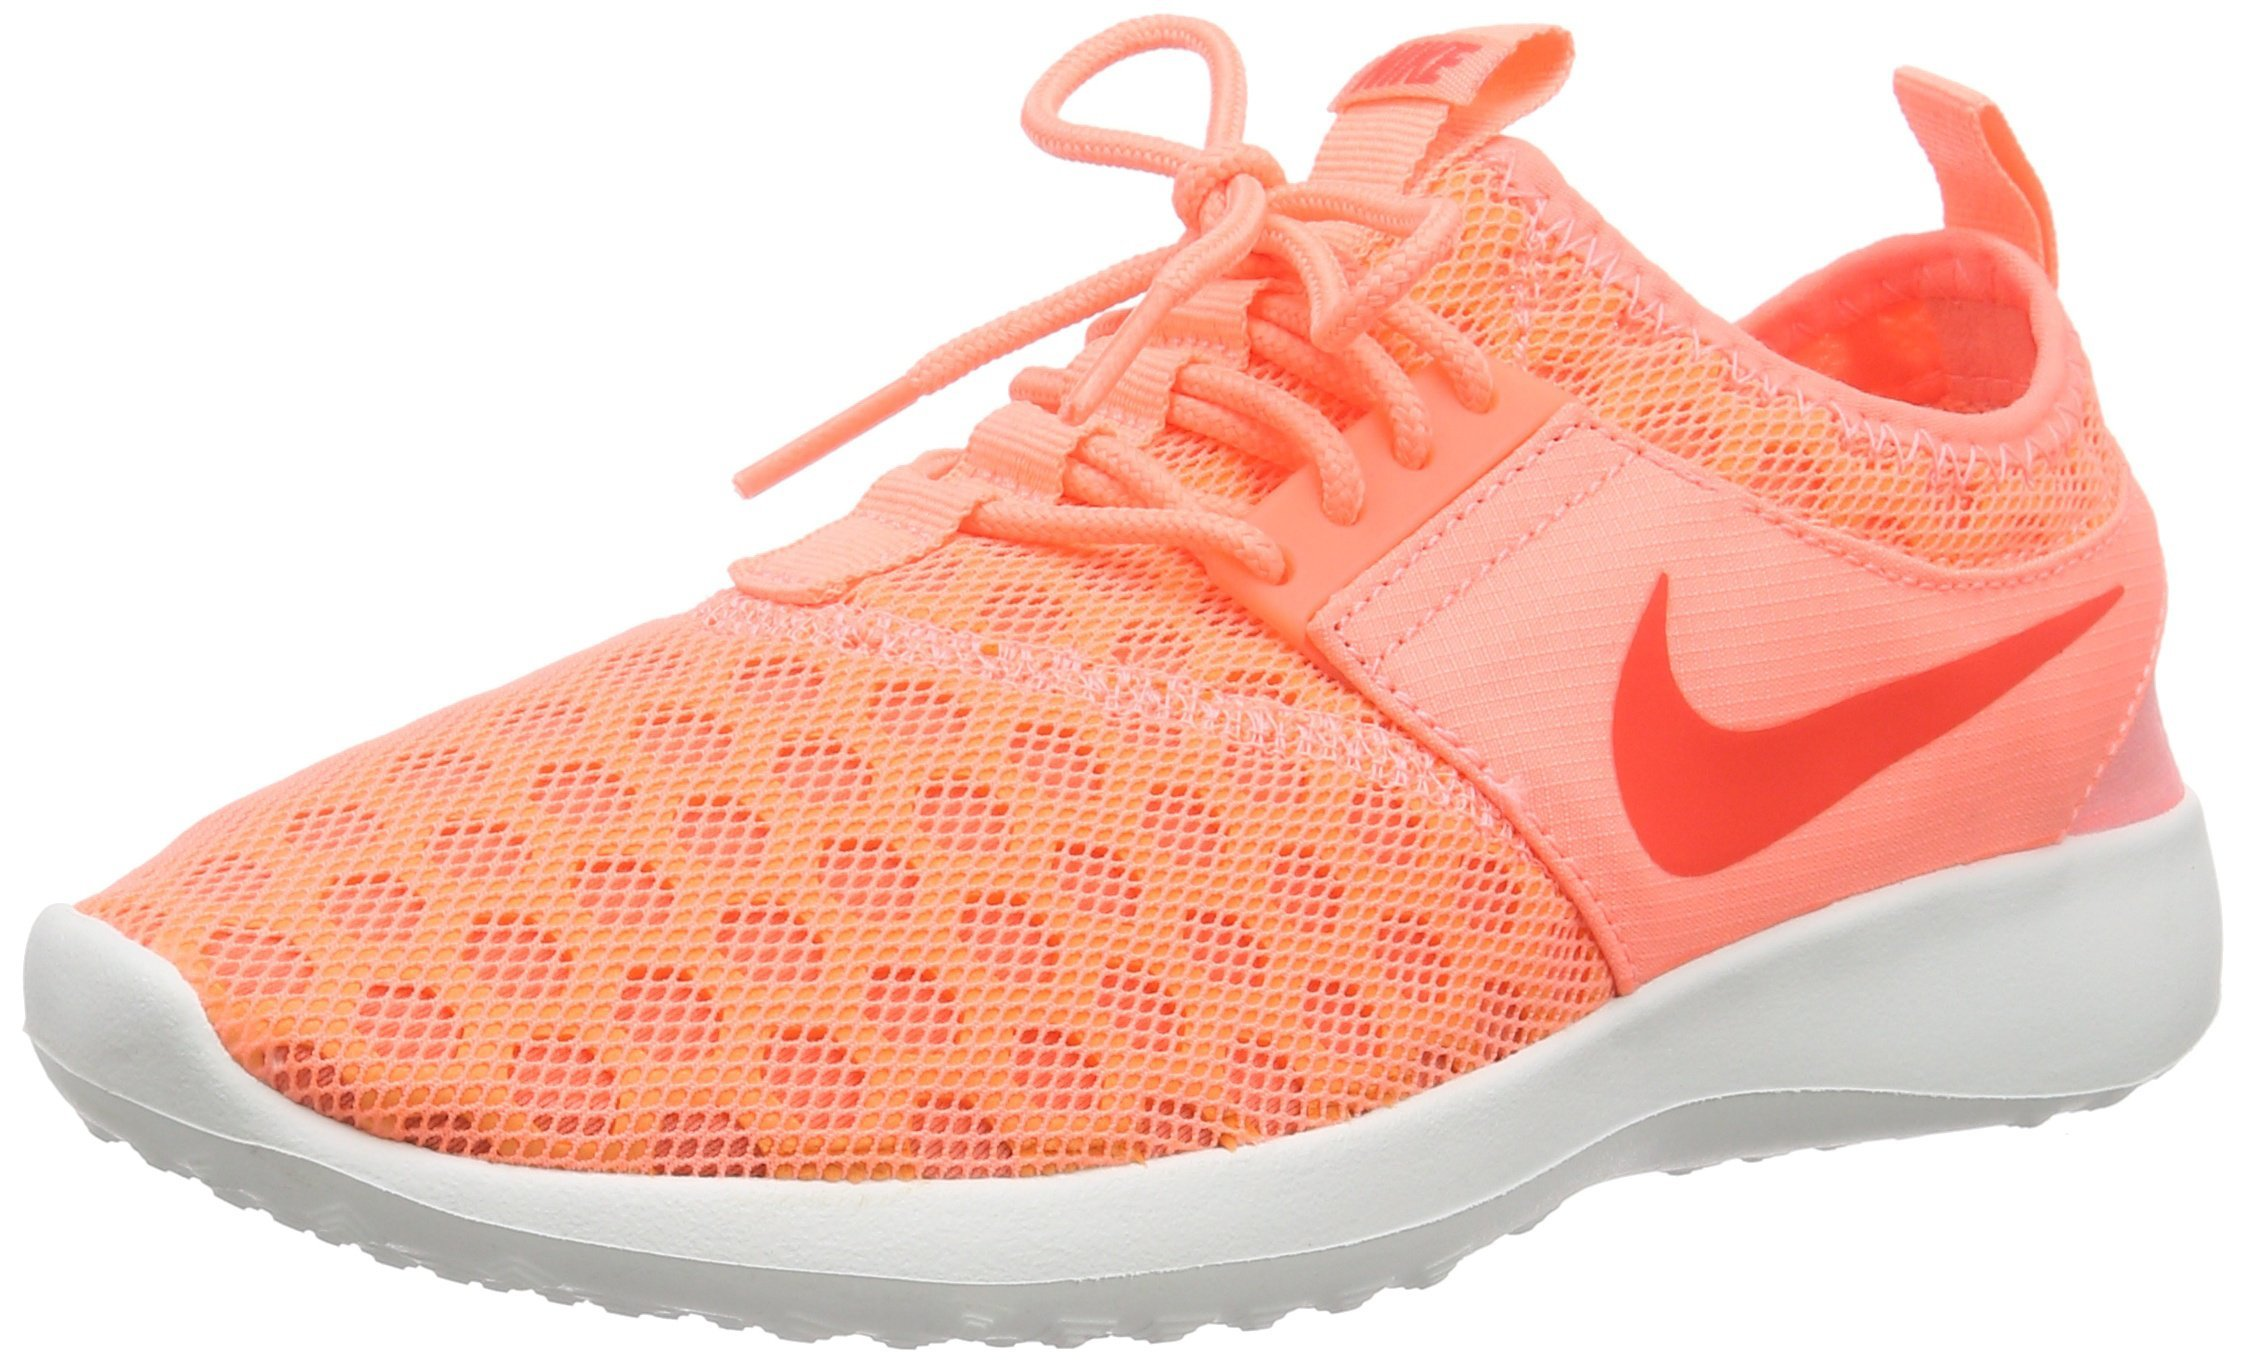 NIKE Women's Juvenate Sneaker, Atomic Pink/Bright Crimson, 6 B US